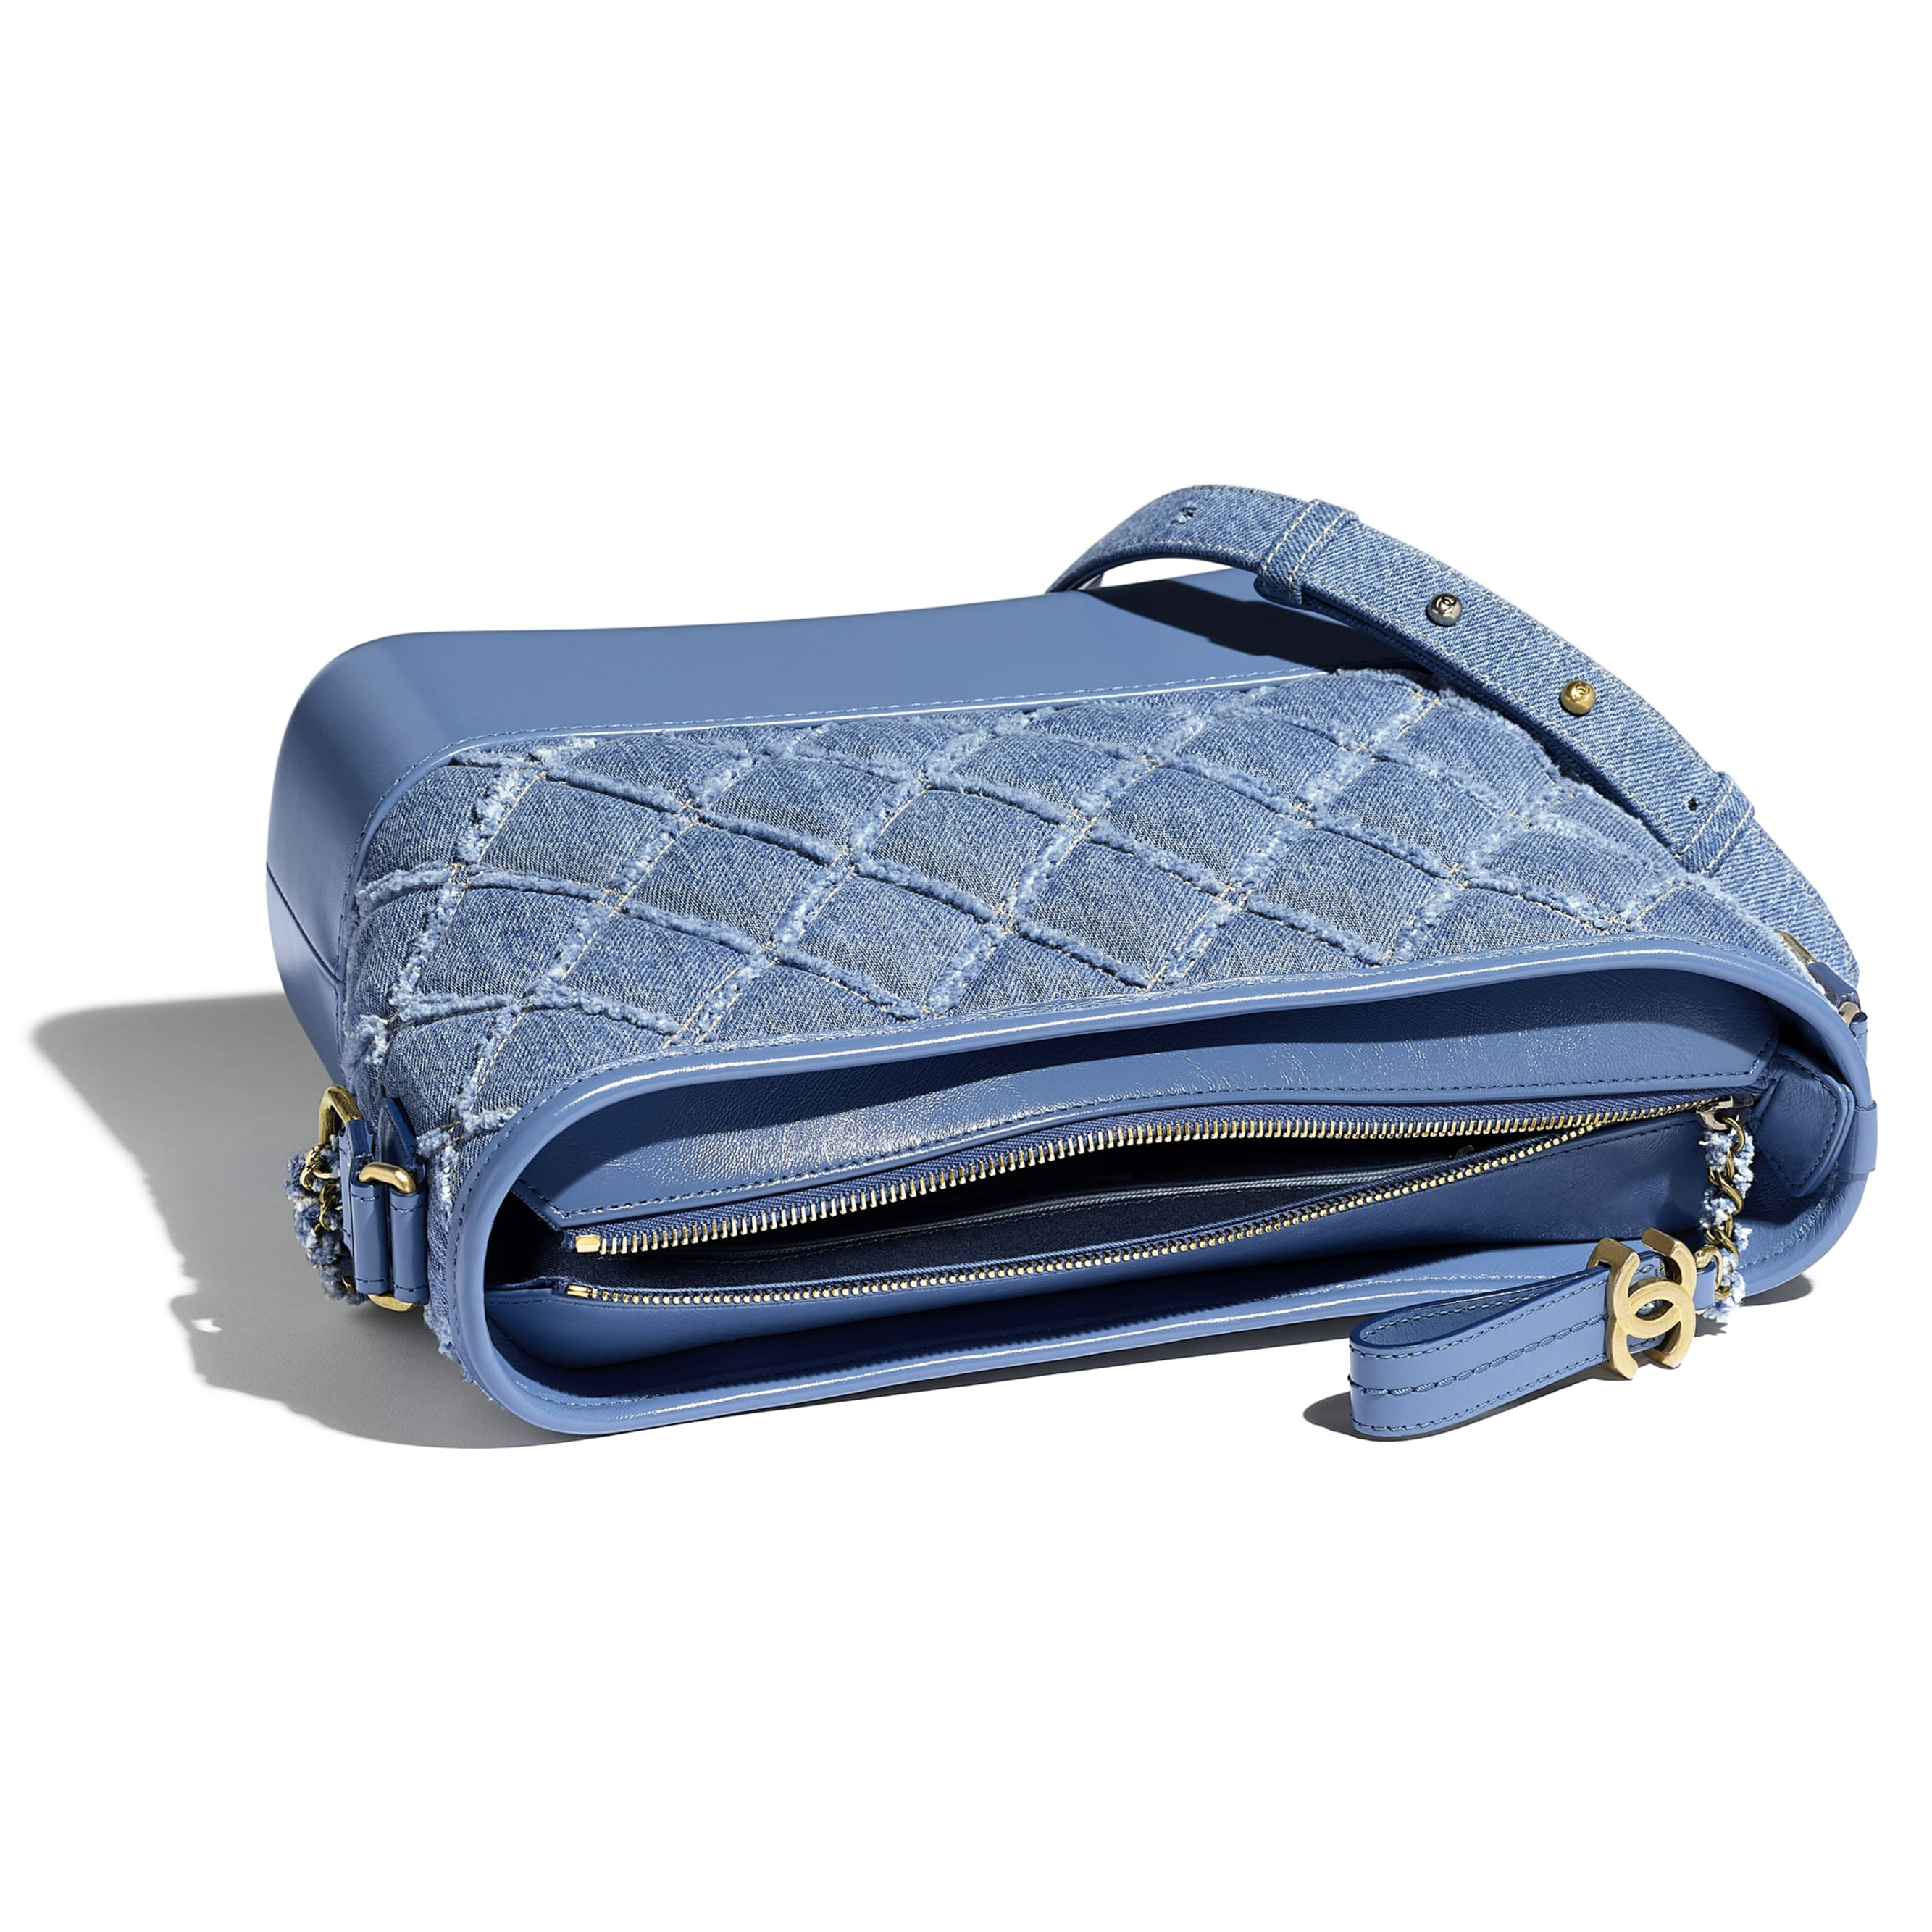 CHANEL'S GABRIELLE Large Hobo Bag - Blue - Denim, Calfskin, Gold-Tone, Silver-Tone & Ruthenium-Finish Metal - CHANEL - Other view - see standard sized version